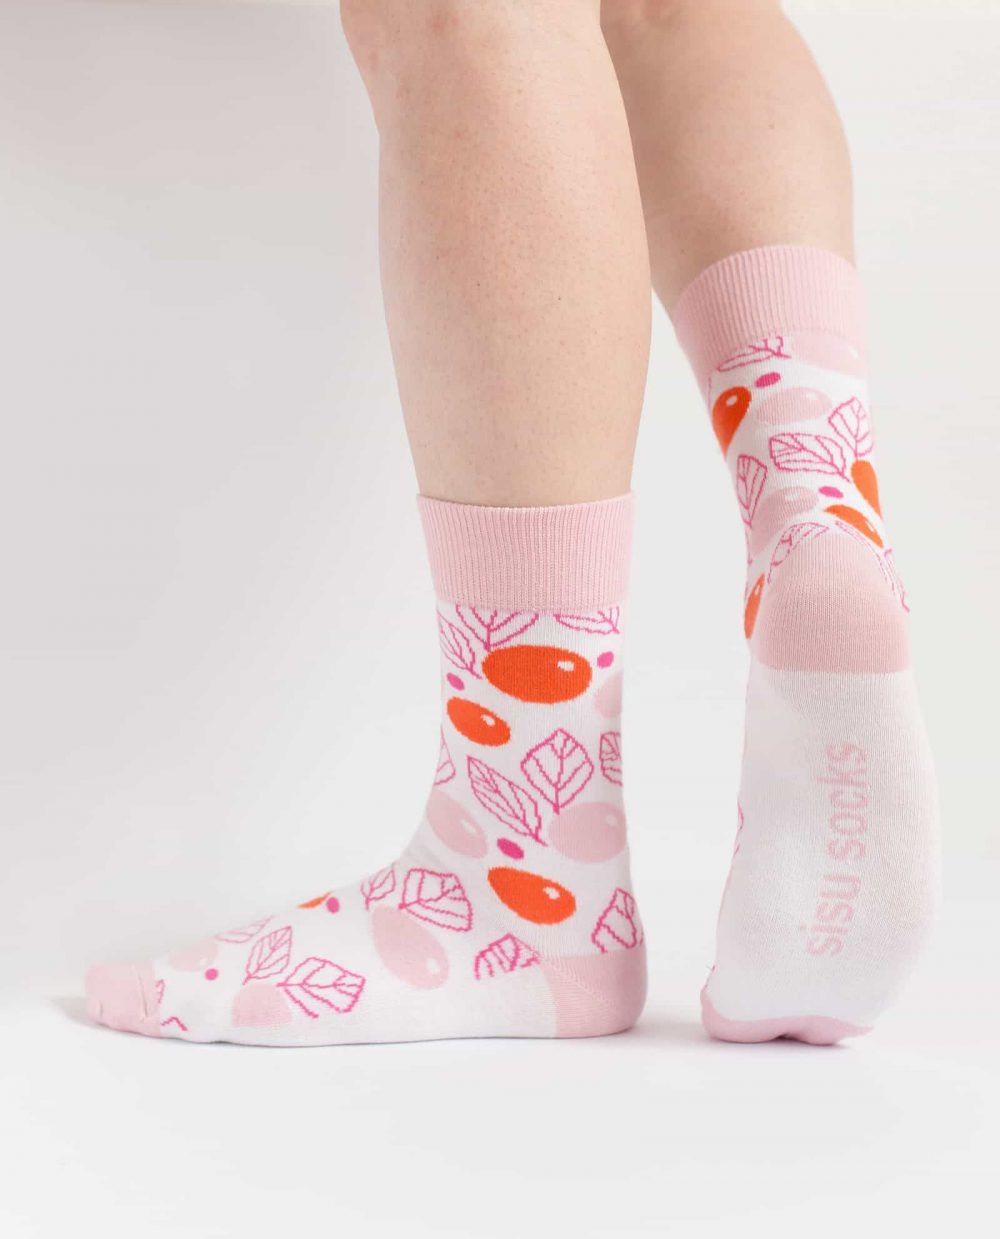 pink floral socks for women from sisu socks